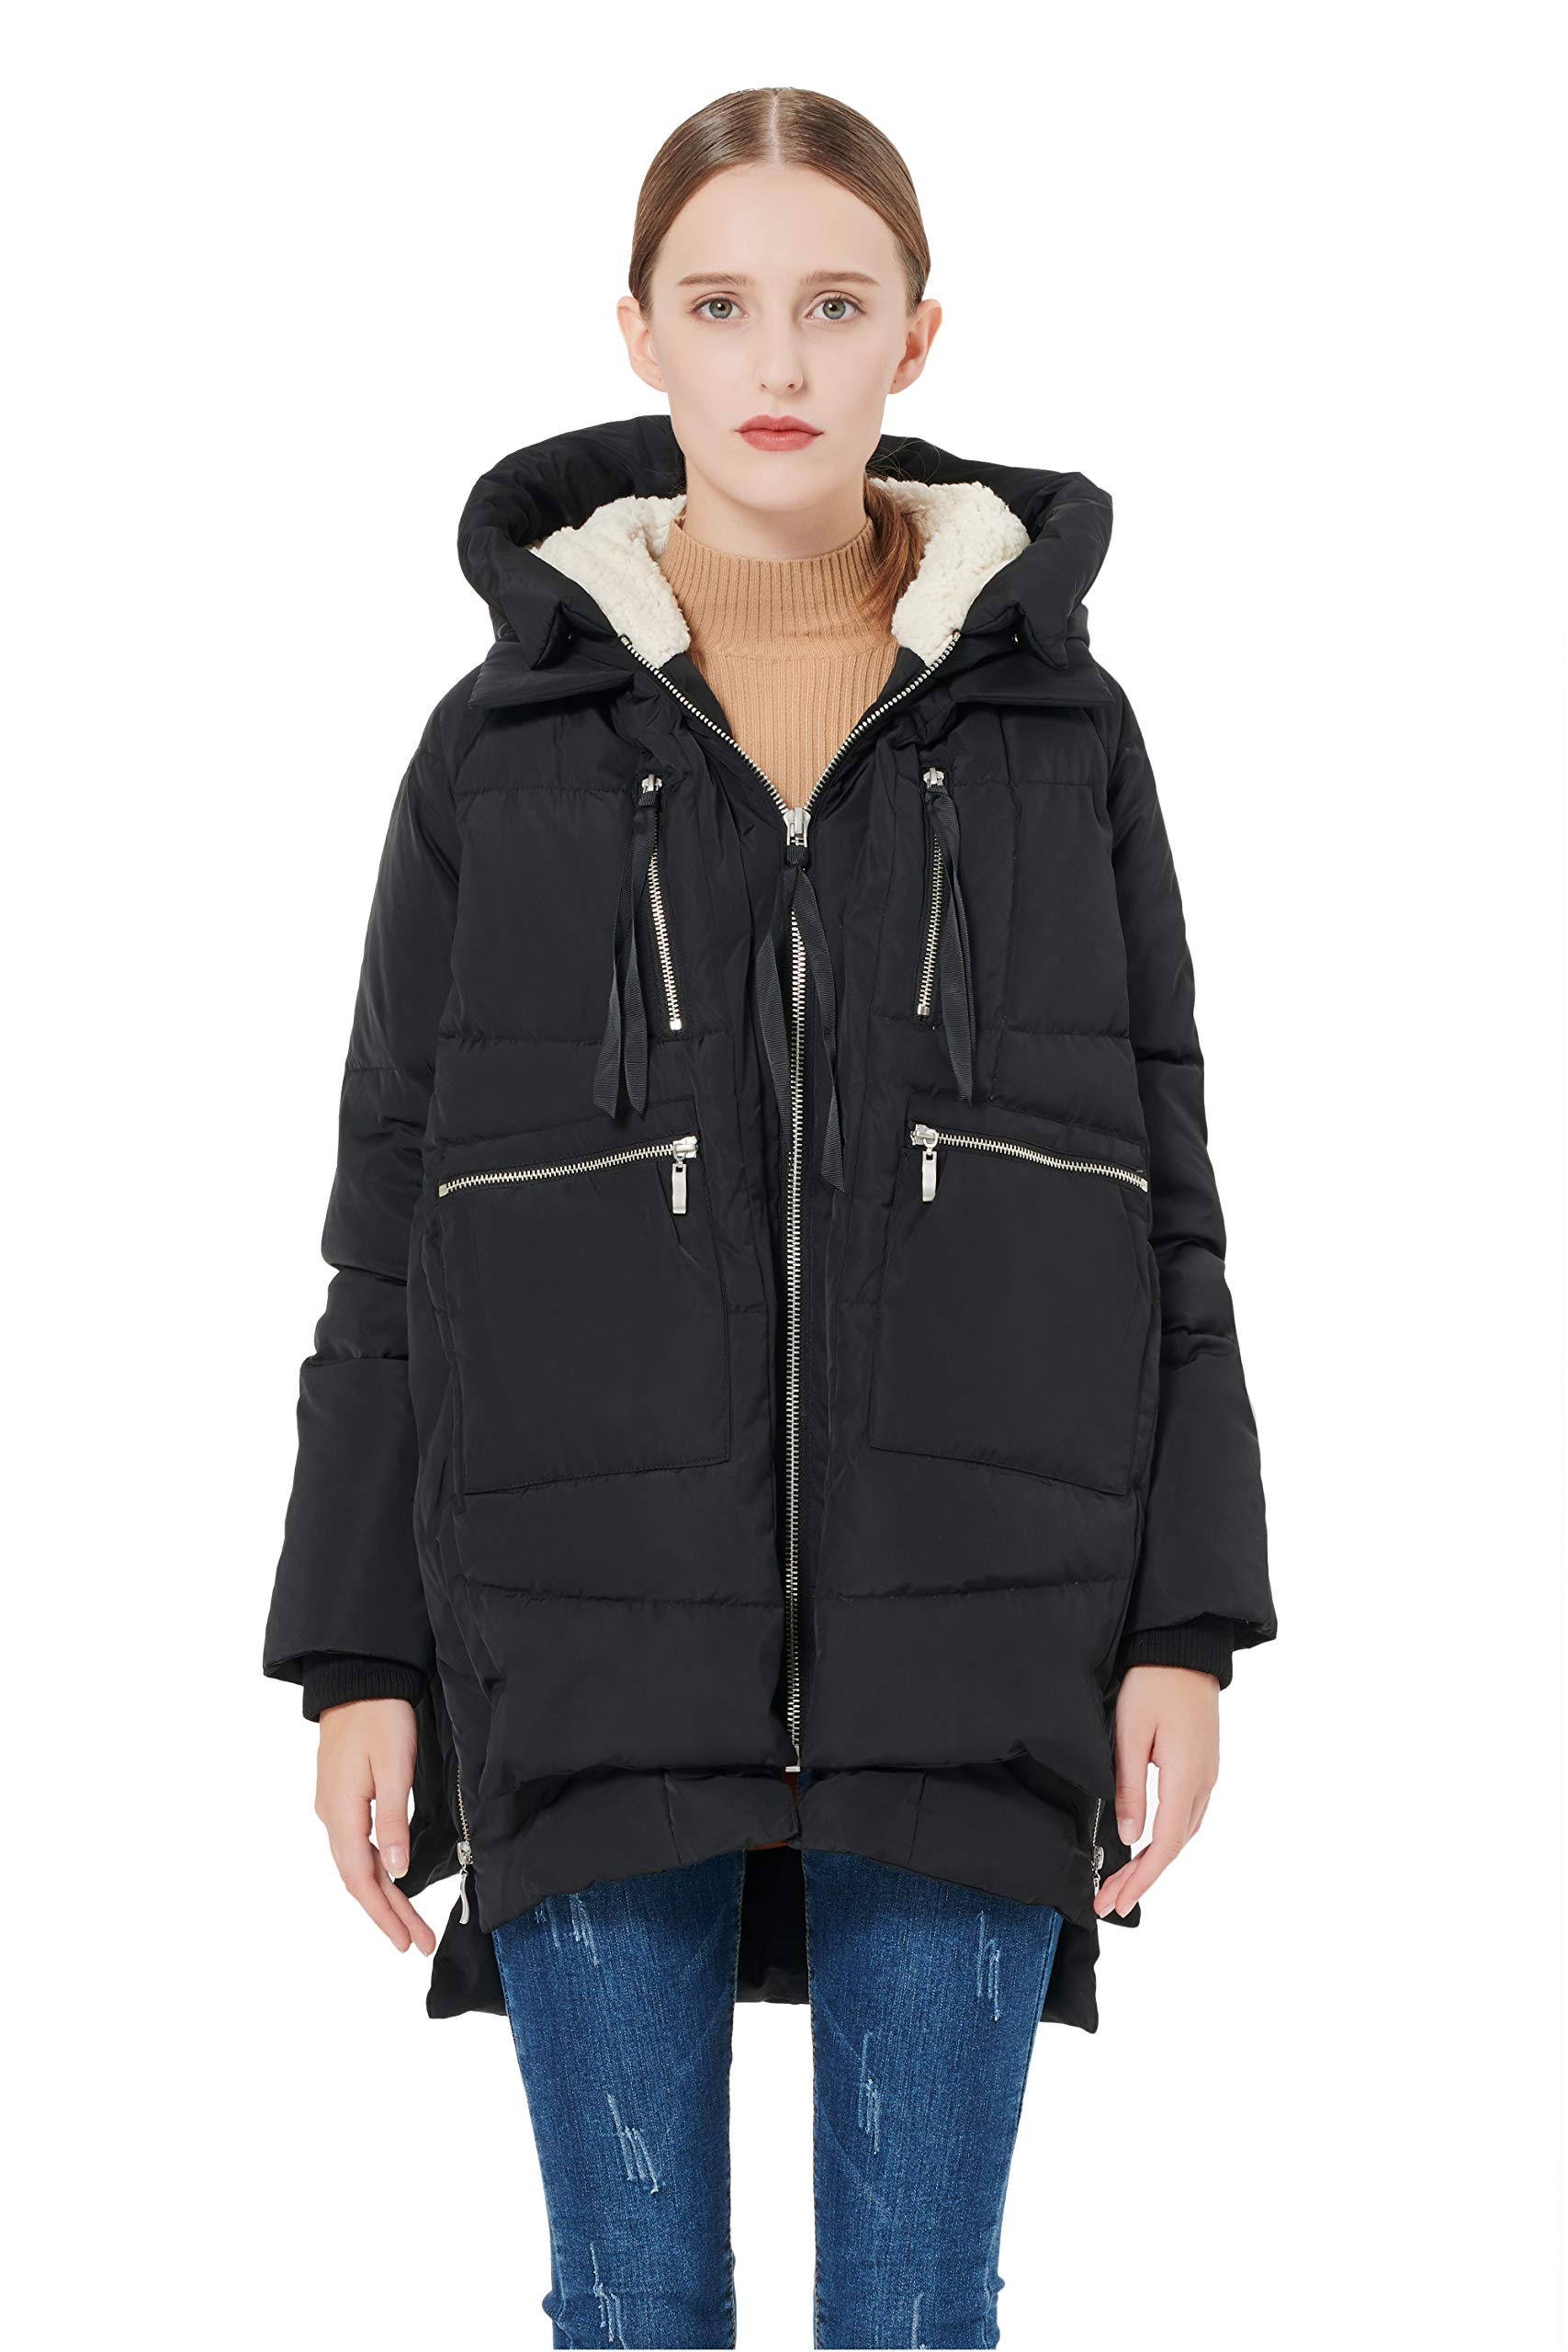 Orolay Women's Thickened Down Jacket Black 2XS